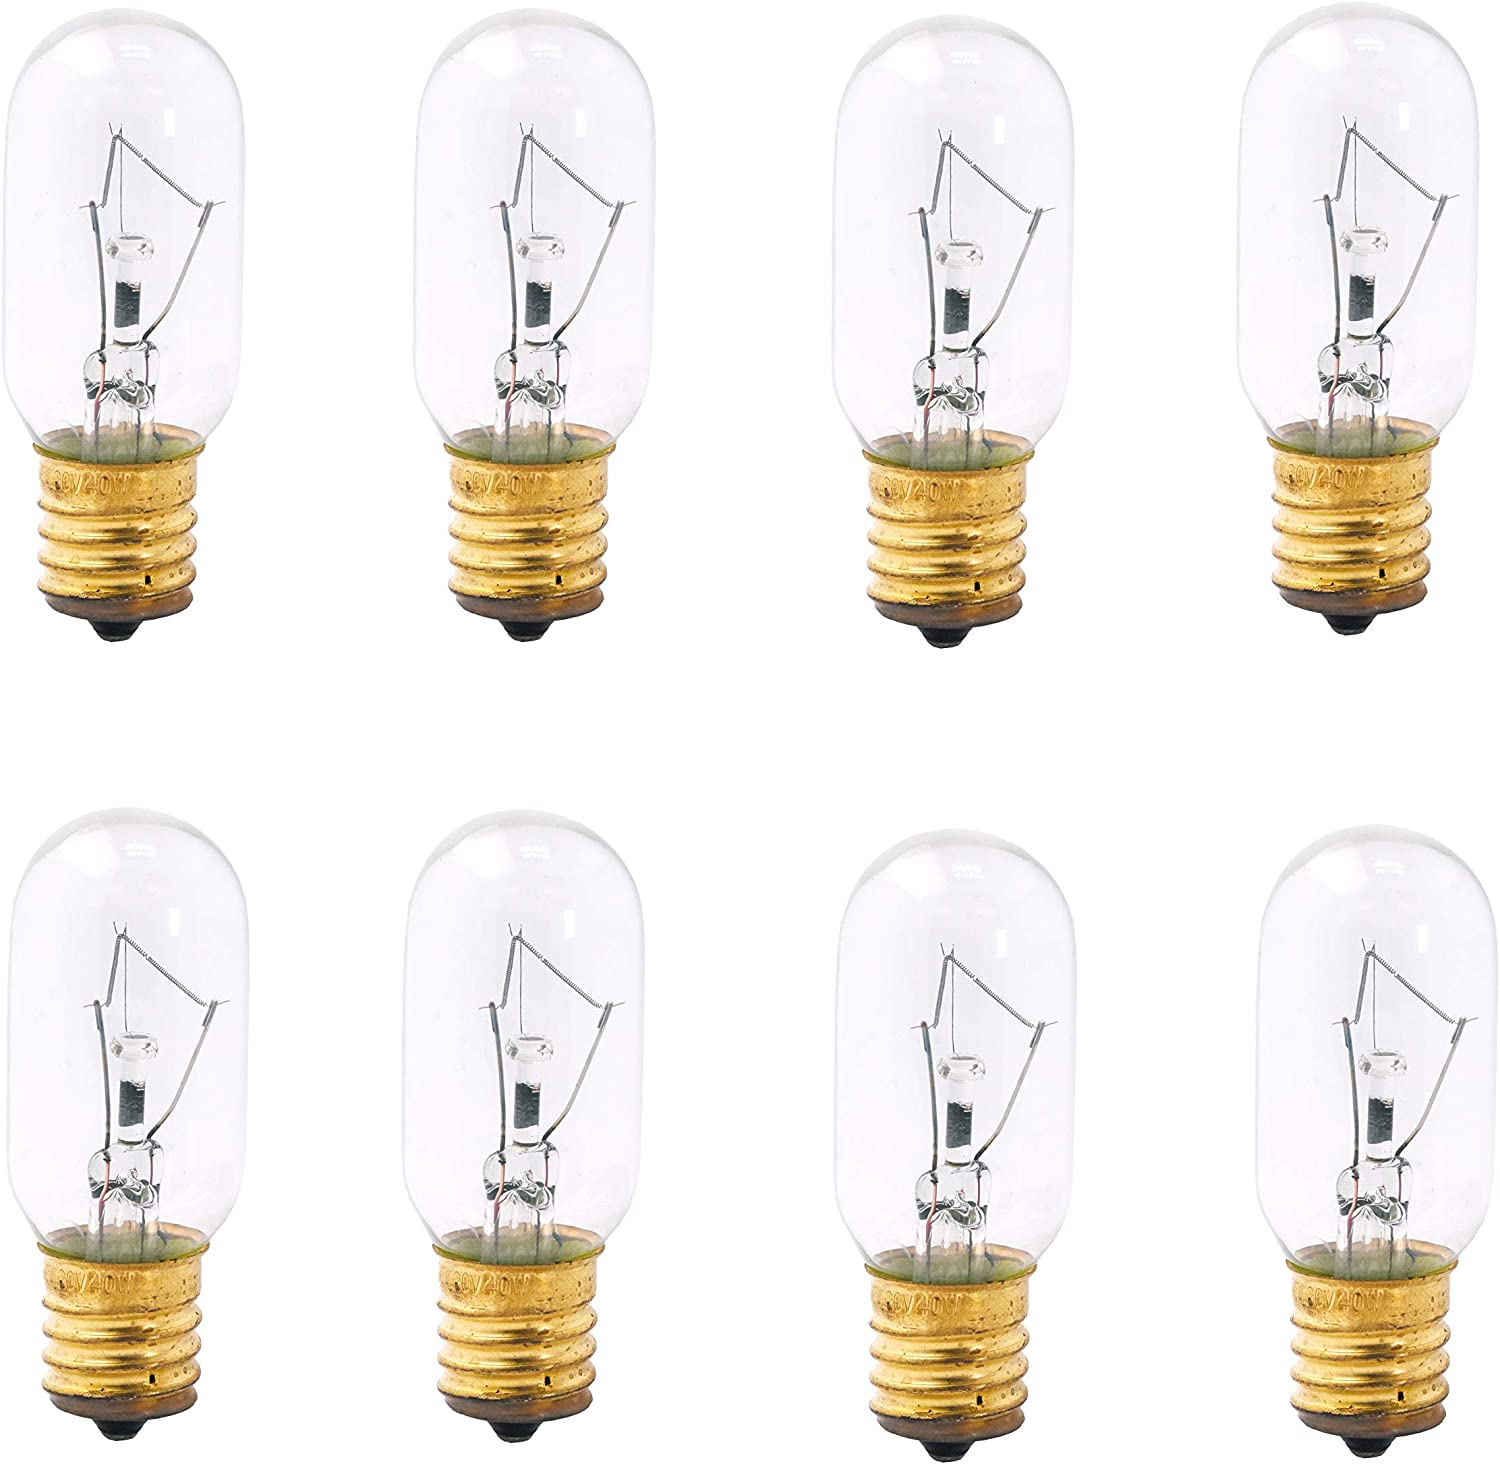 Mandala Crafts Appliance Light Bulbs for Microwave, Refrigerator, Oven; Dimmable, Intermediate Base, Pack of 8 (Warm White, E17 T8 120V 40 Watt)